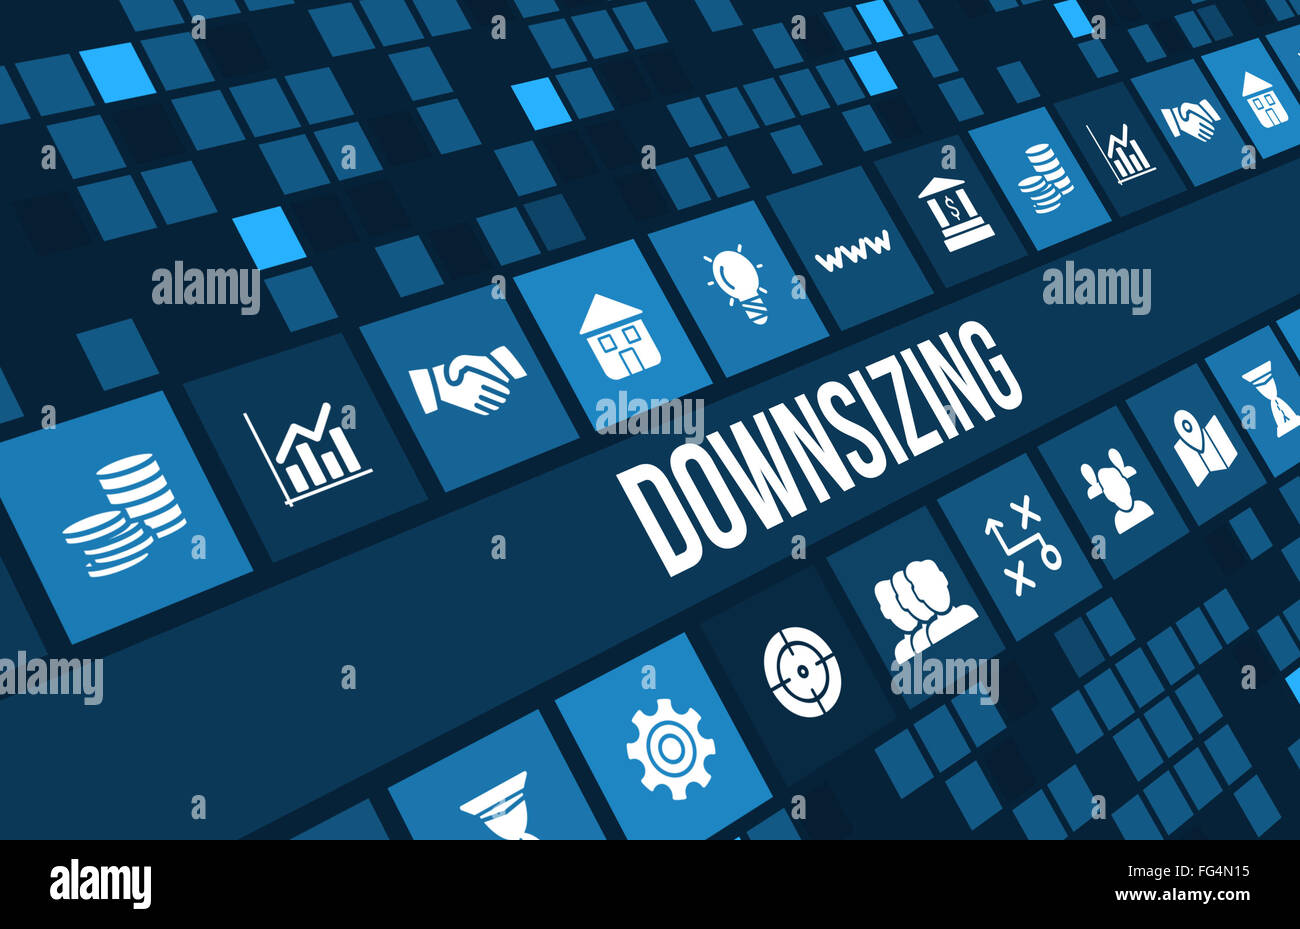 Downsizing concept image with business icons and copyspace. - Stock Image